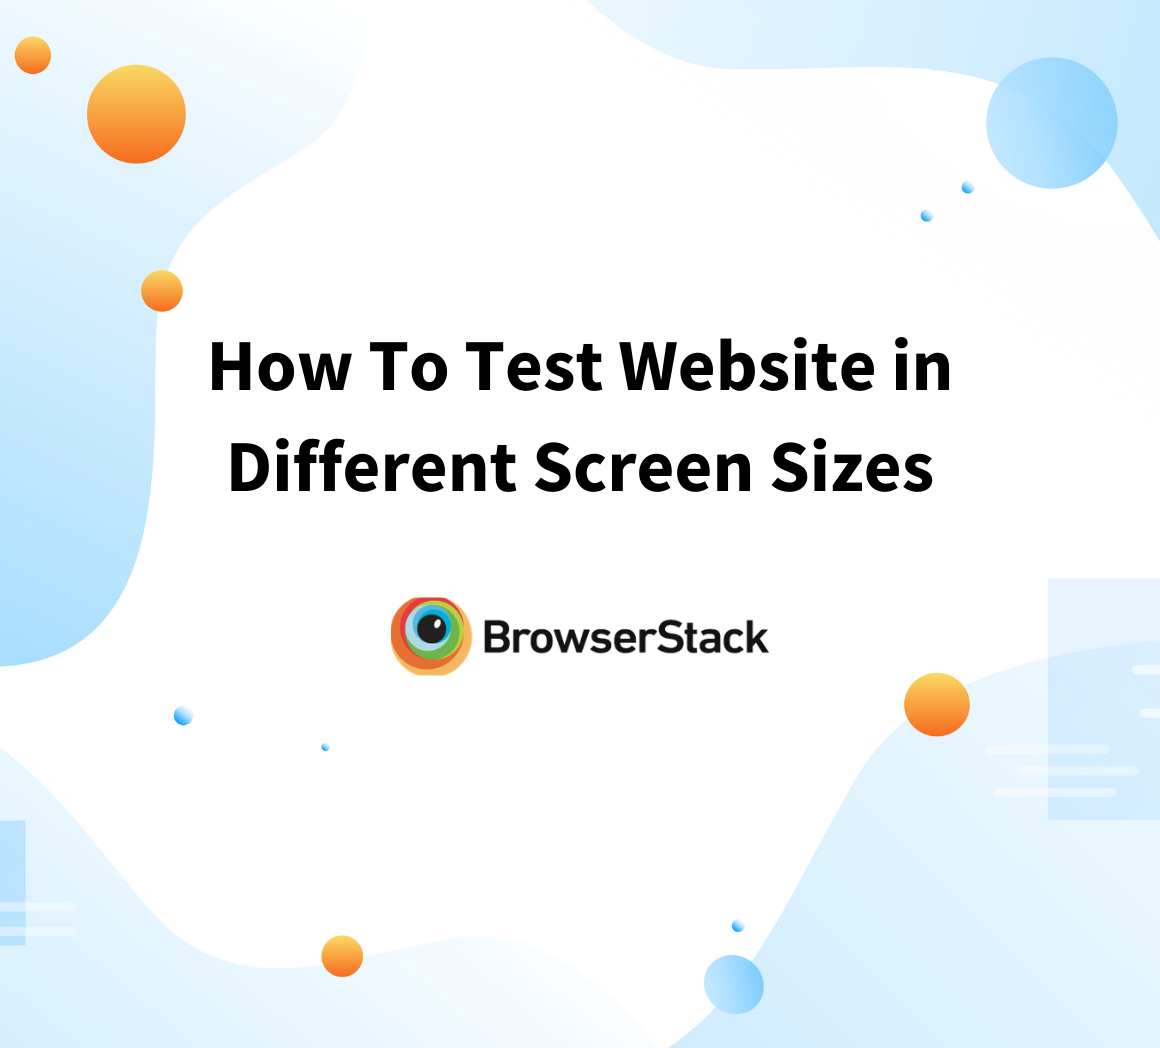 How To Test Website in Different Screen Sizes